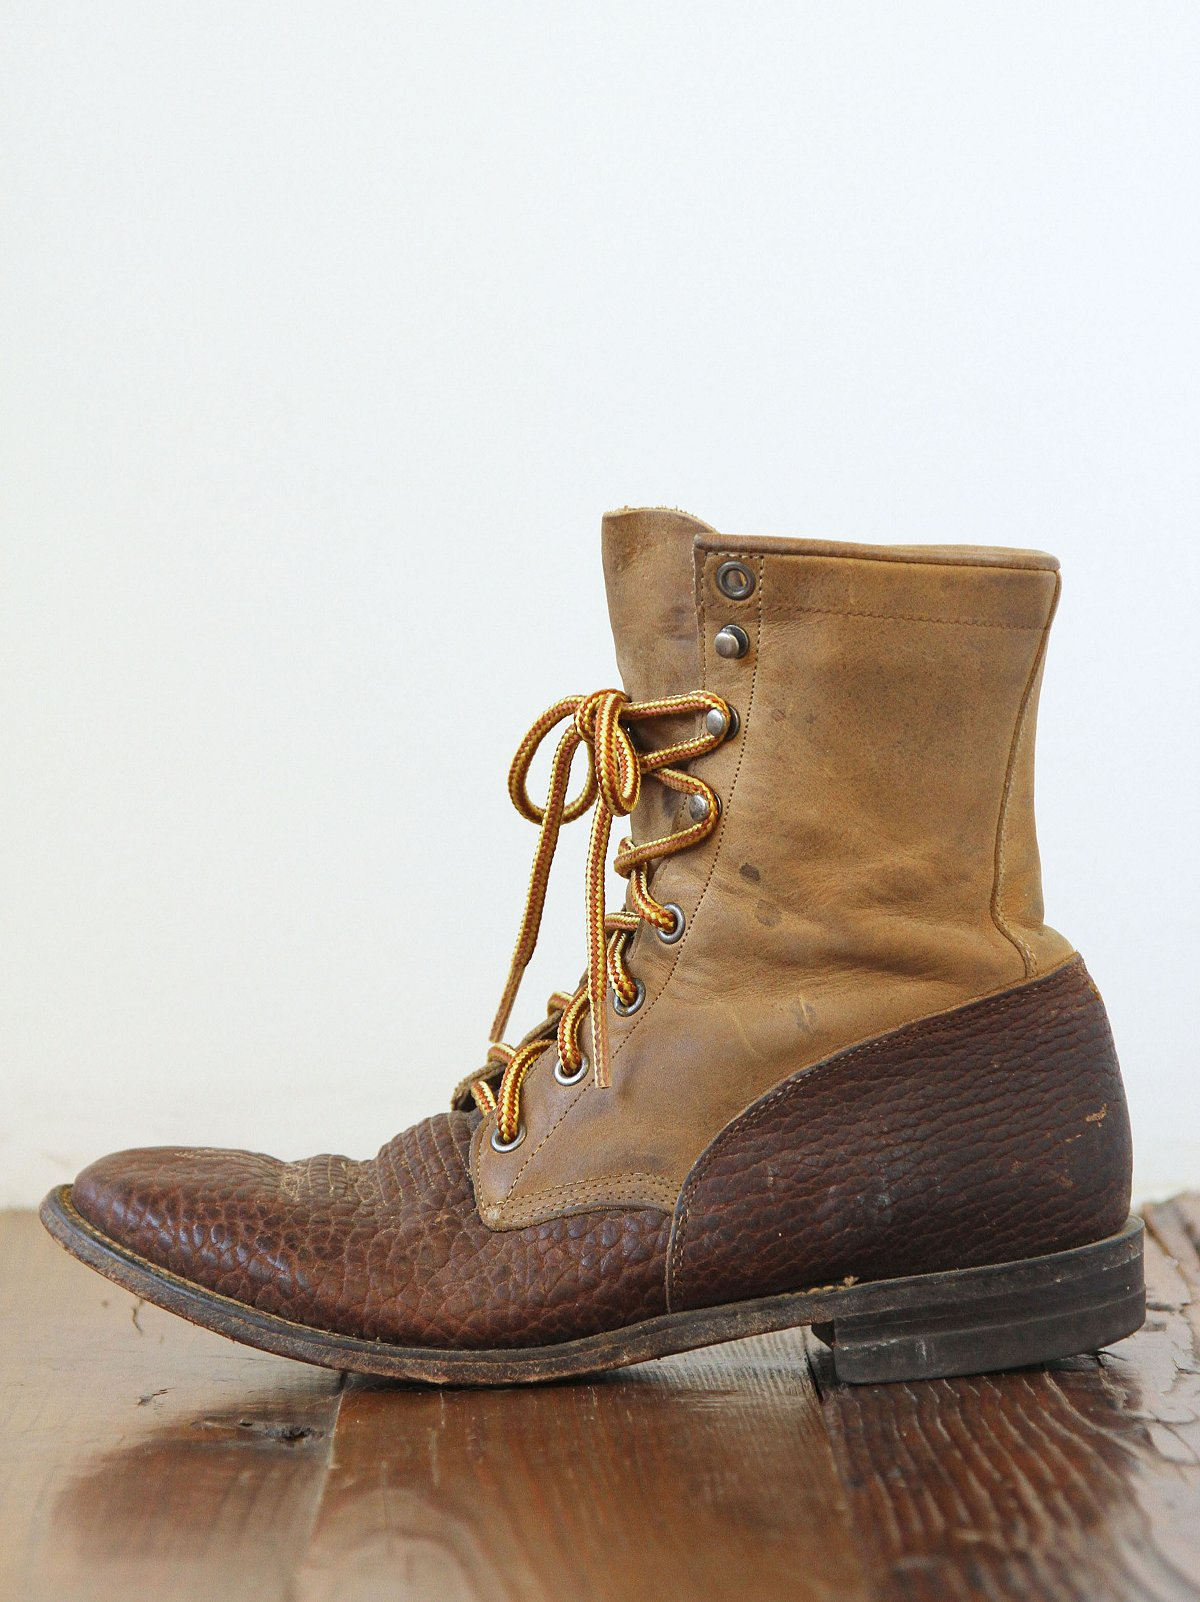 Vintage Two-Tone Boots